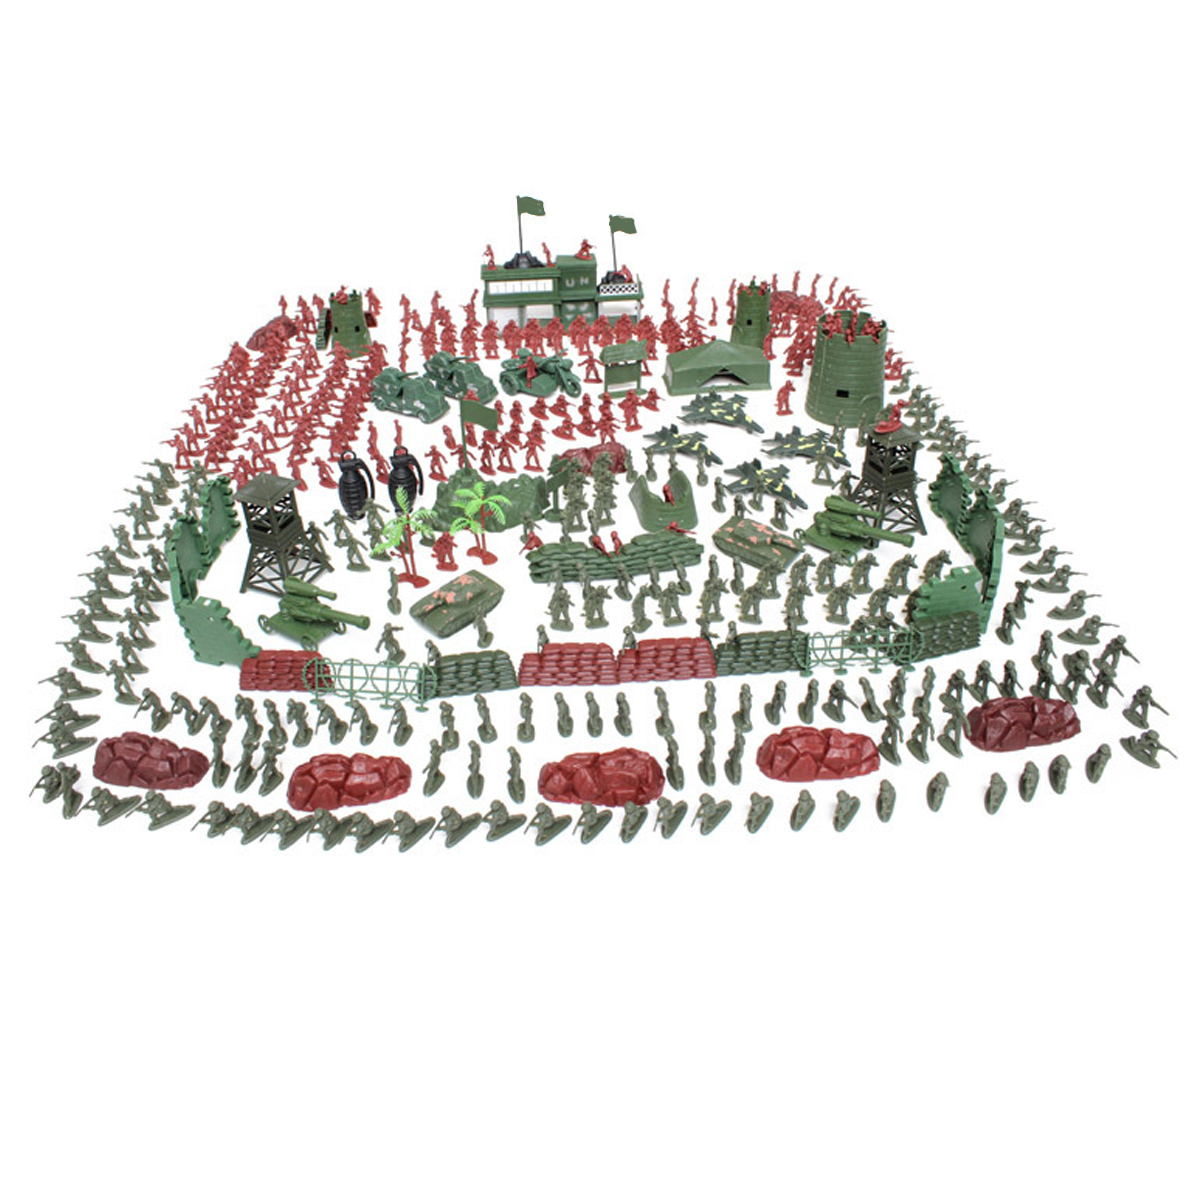 500PCS Military Playset Plastic Toy Soldiers Army Men 4cm Figures Christmas Gift